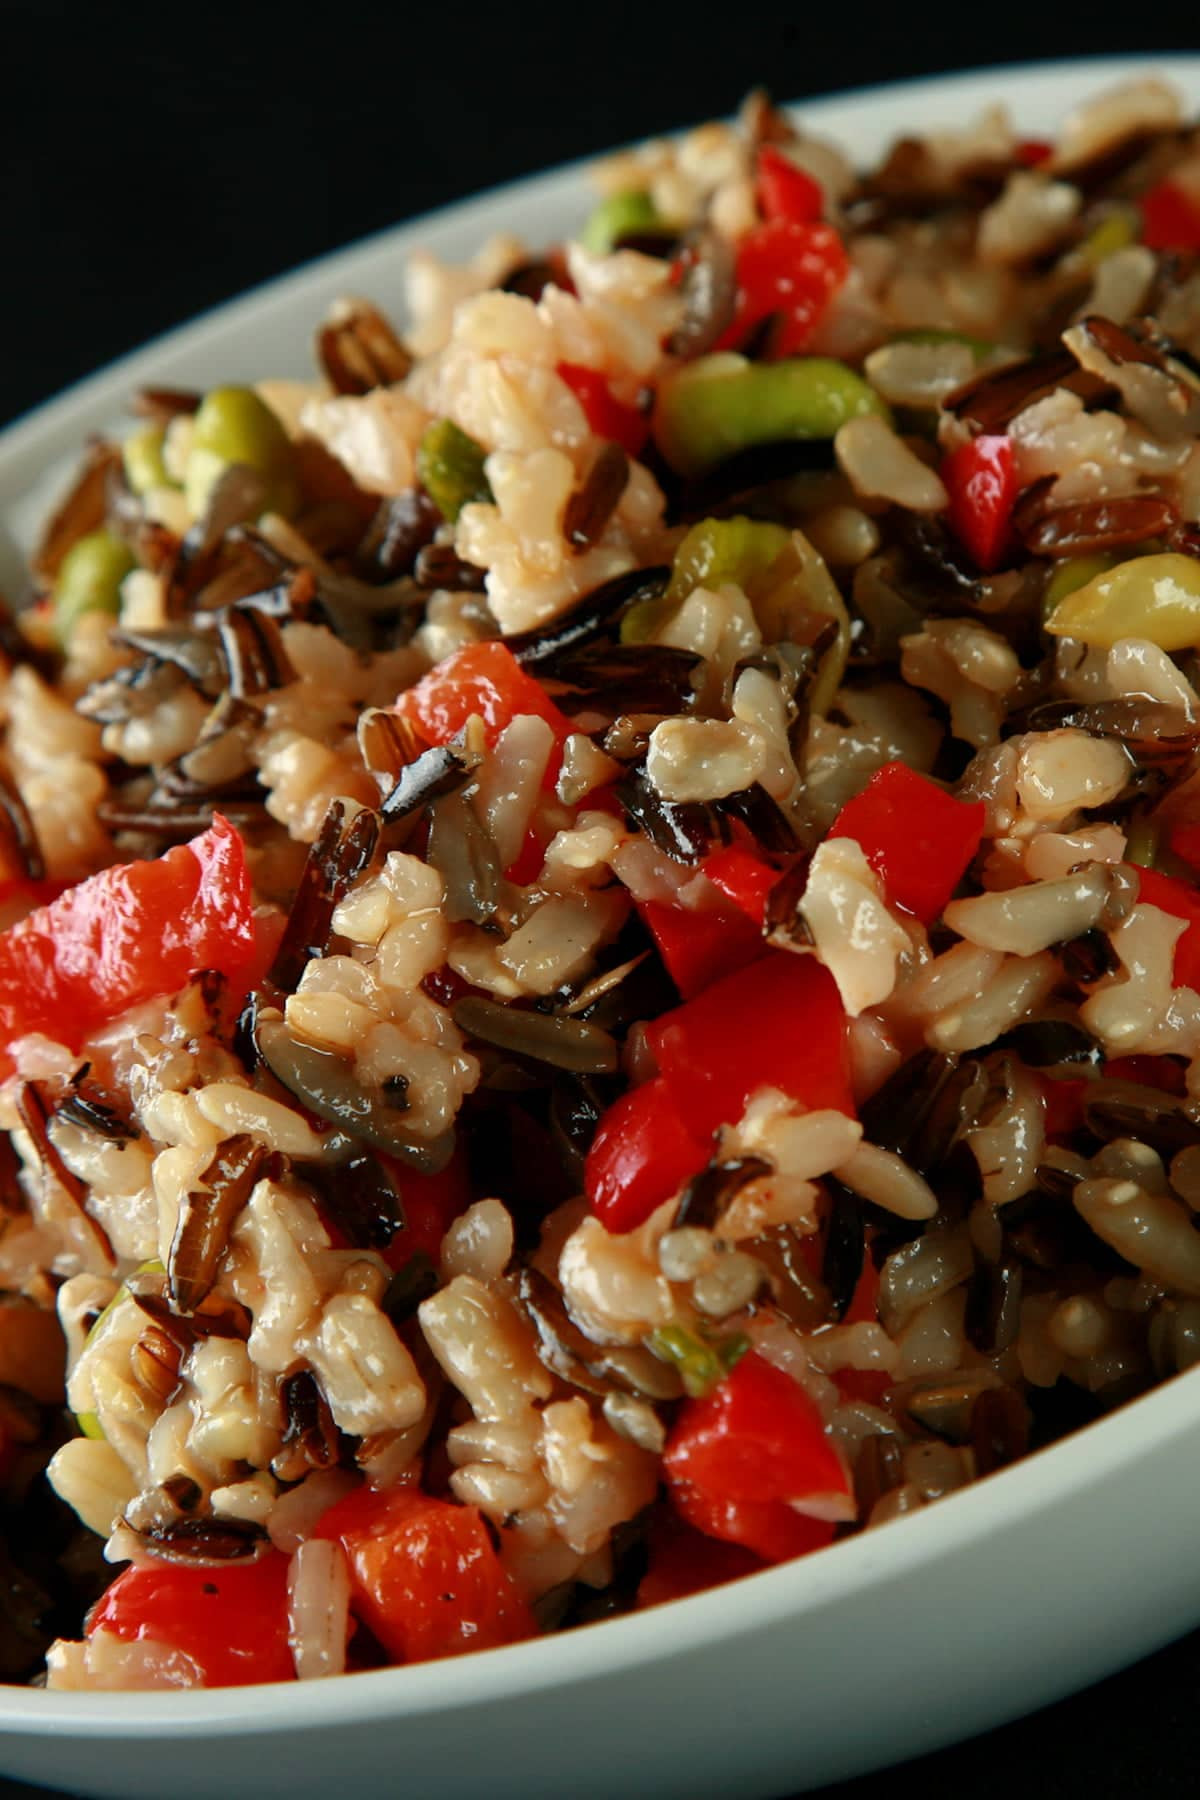 A bowl of edamame wild rice salad. Wild rice, edamame, and red peppers are all visible.